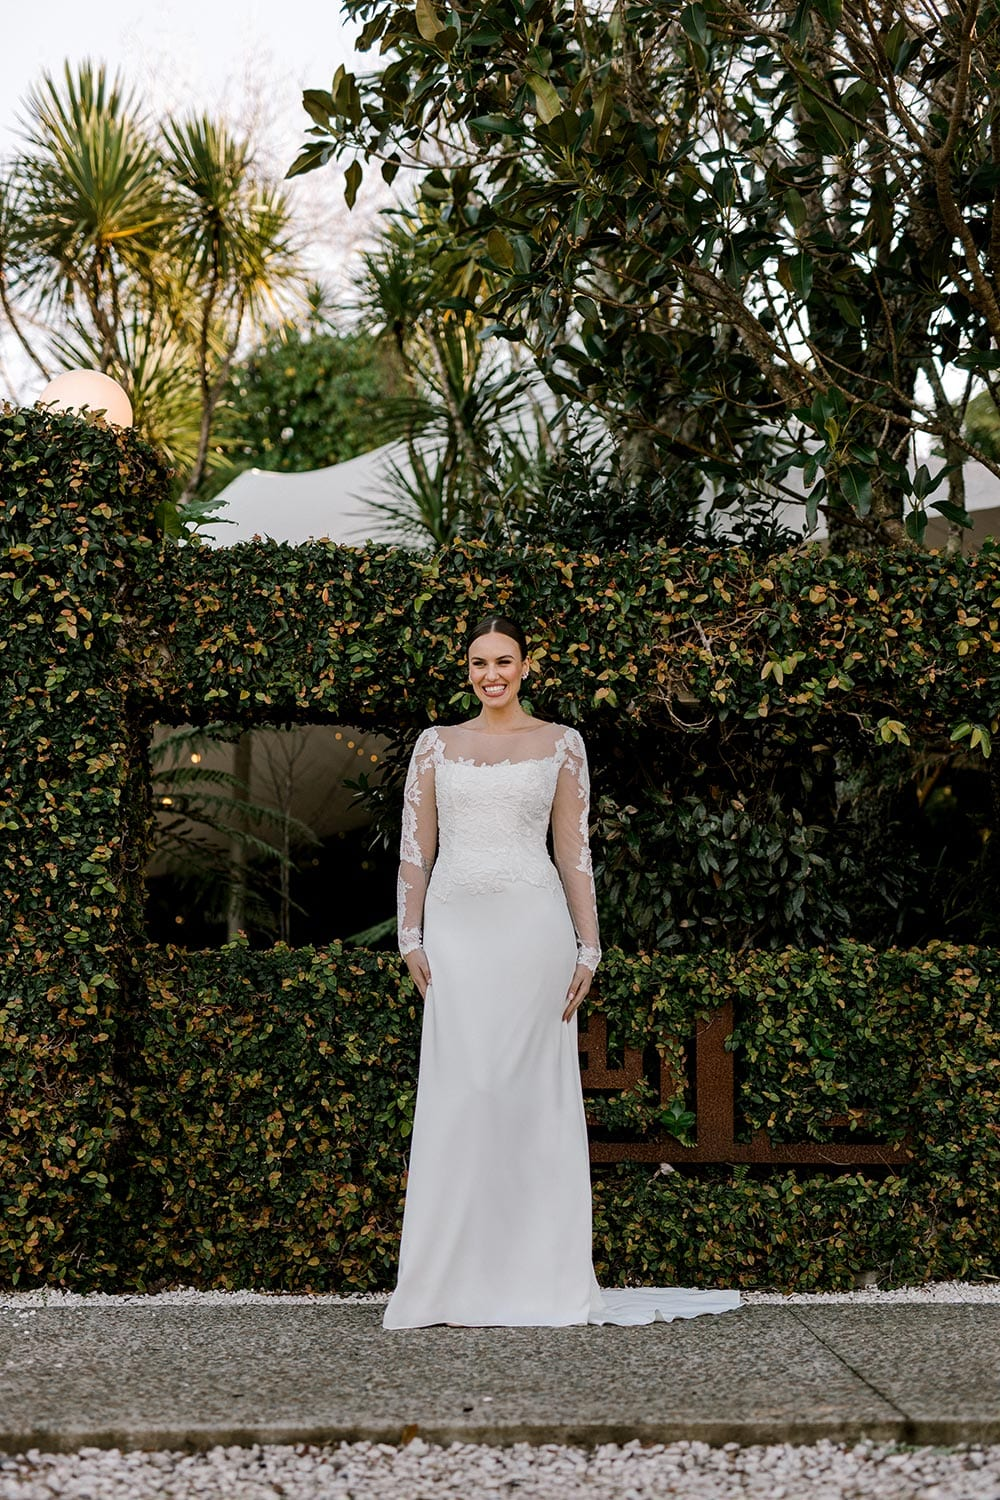 Ariel Wedding Dress from Vinka Design. Wedding dress with illusion scoop neckline & sheer low back with beaded lace. Long, fitted lace sleeves with pearl buttons & A-line skirt that falls into a train. Full length dress portrait, photographed at Tui Hills by Emmaline Photography.